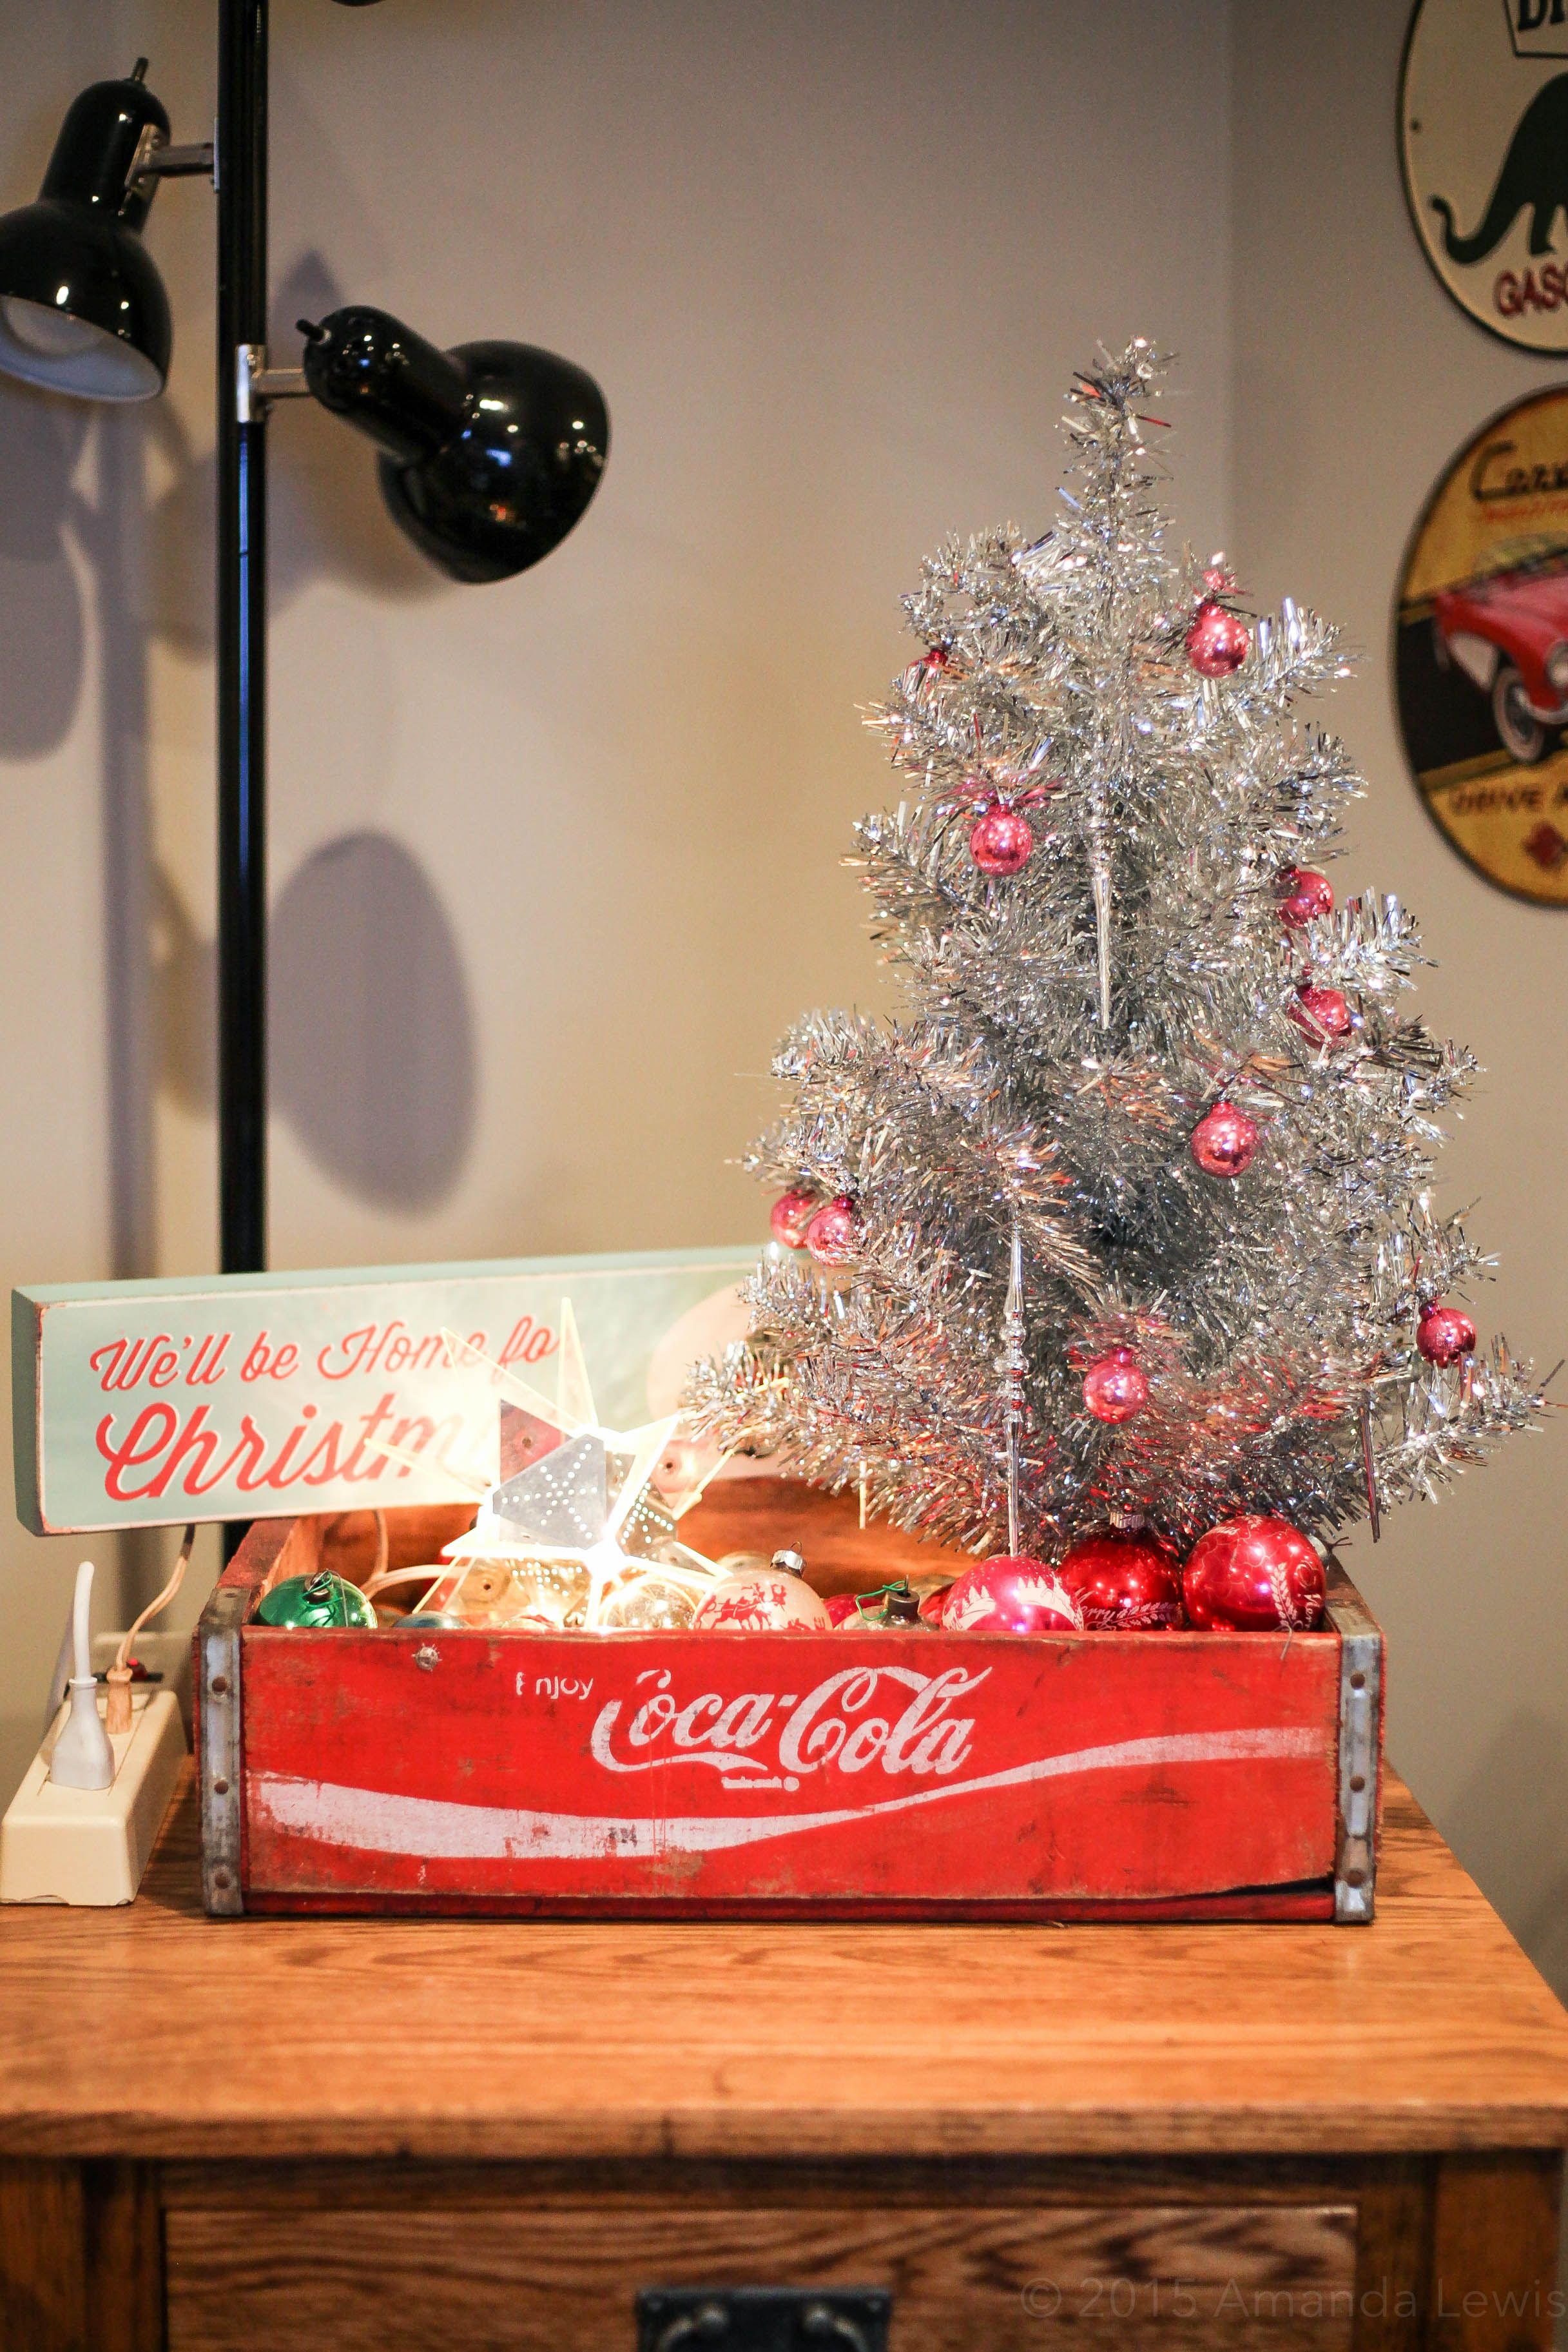 My vintage Christmas display! Inspired by the Vintage Sisters! :)